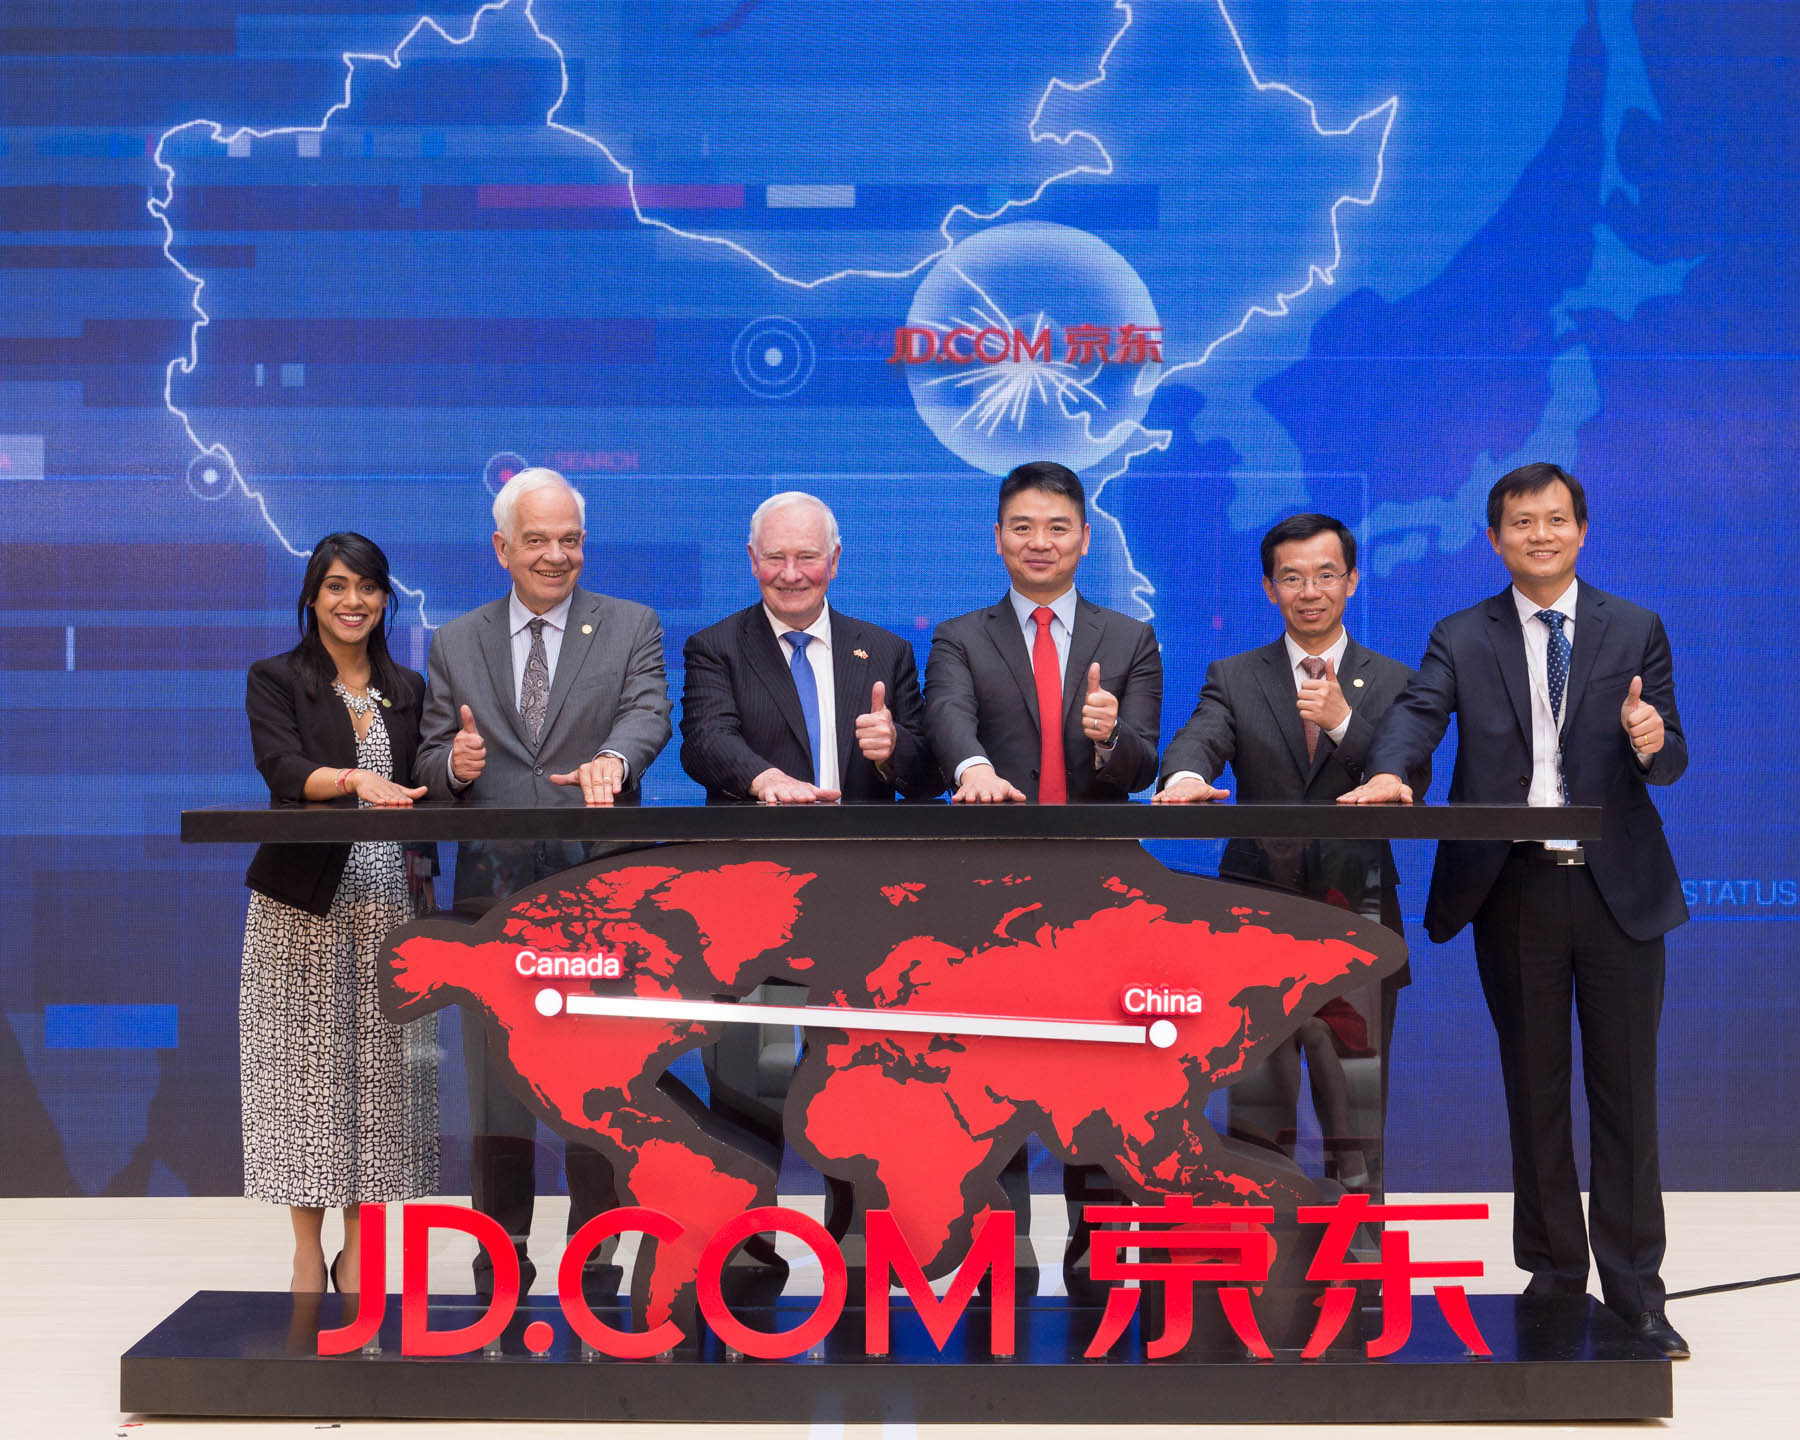 Before leaving JD.com, the Governor General, Minister Chagger and Ambassador McCallum, participated in the launch the Canadian Fresh Food Pavilion on JD.com.